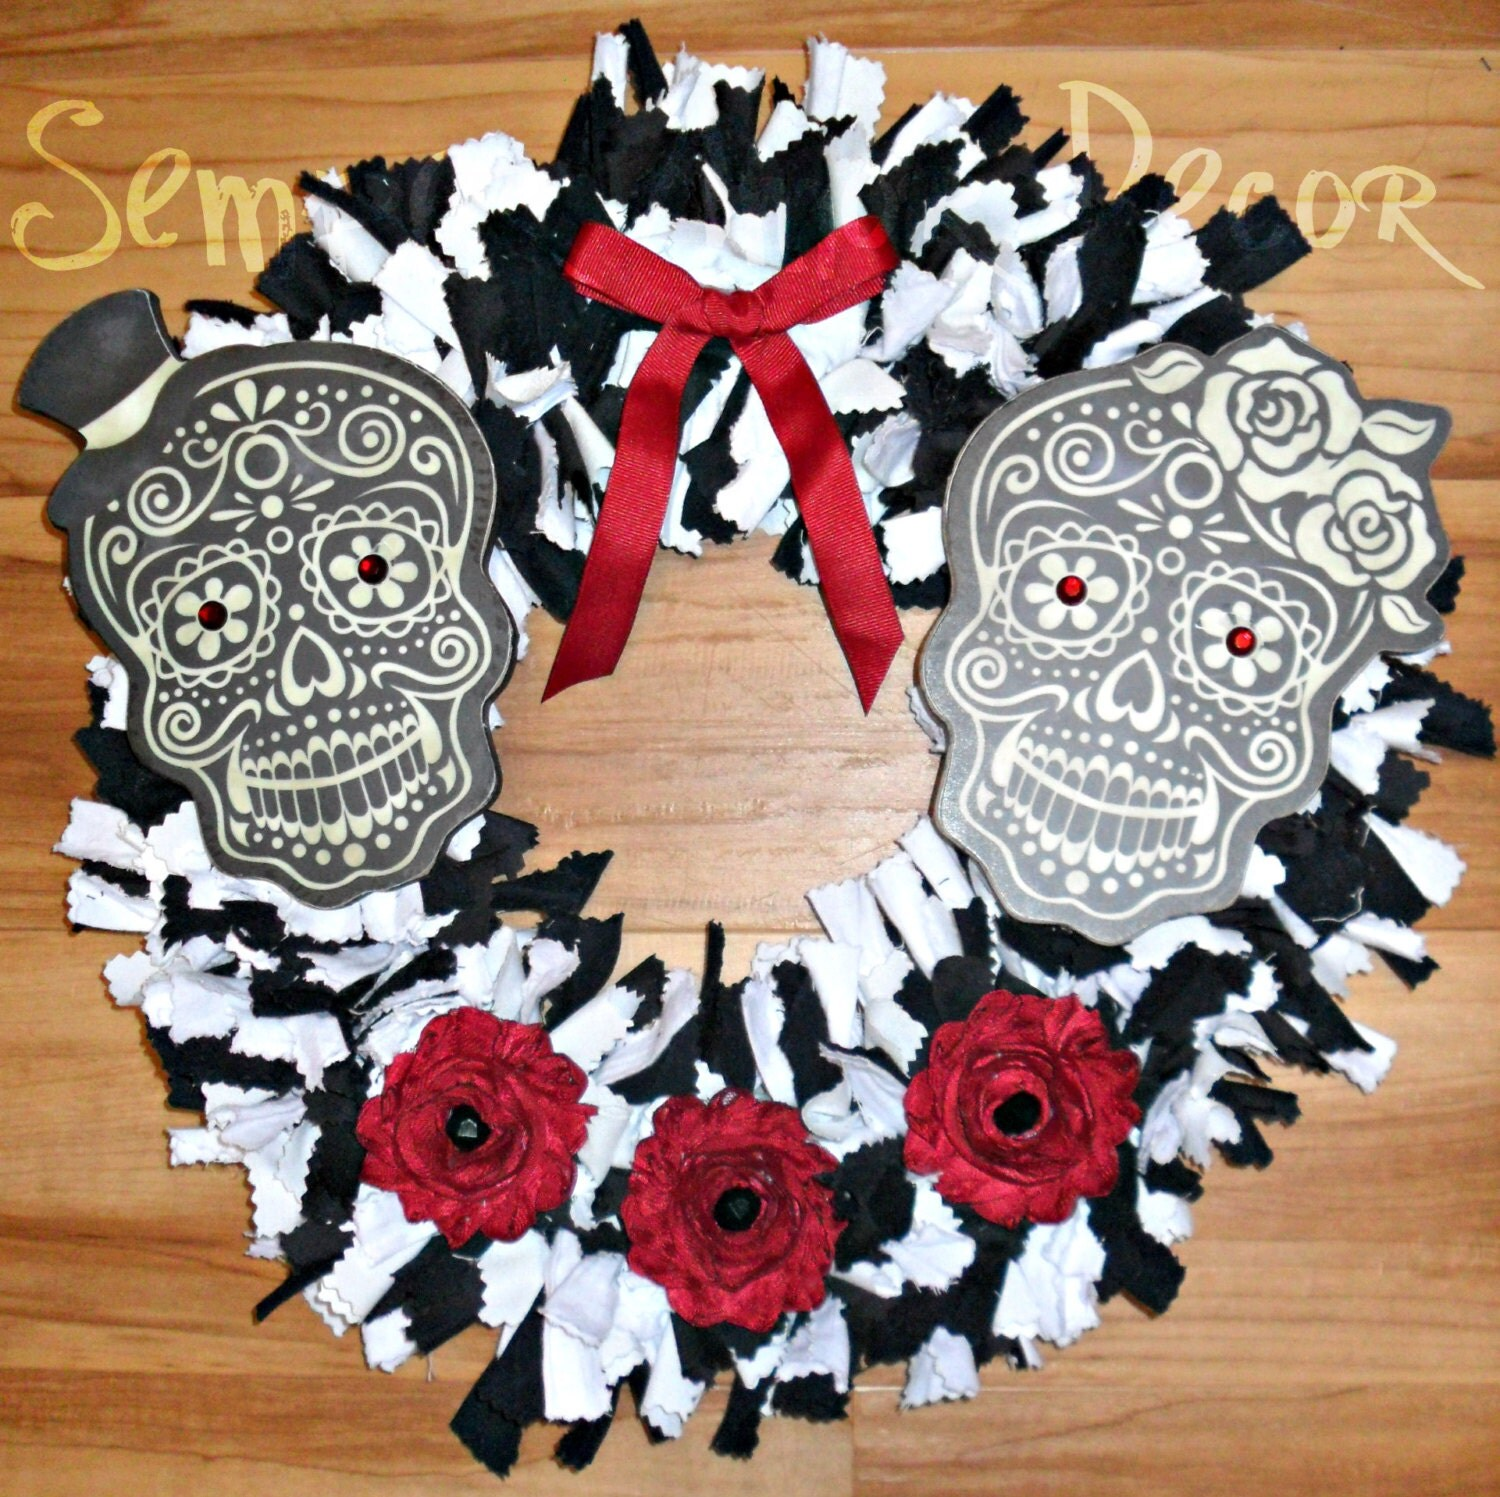 Skull Wreath Sugar Skull Wreath Sugar Skull Decor Day Of